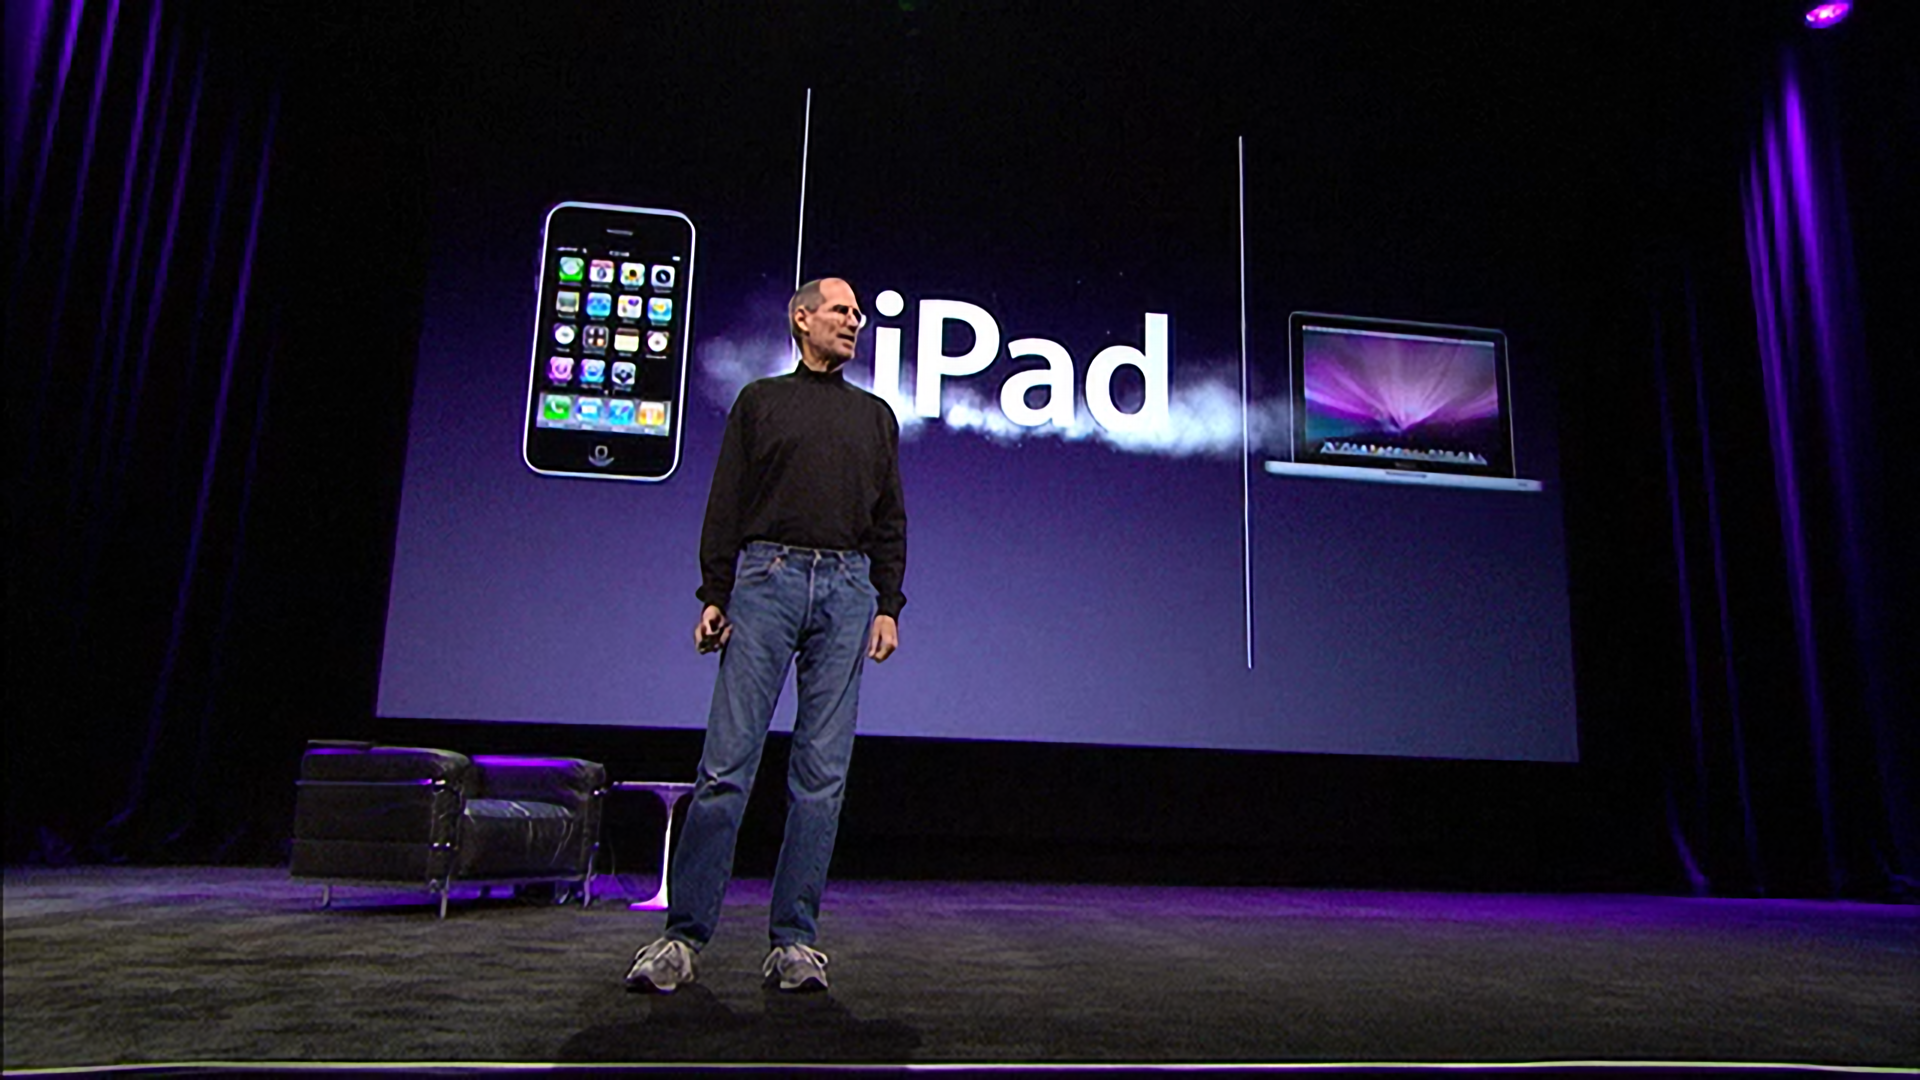 '...and we call it the iPad.'